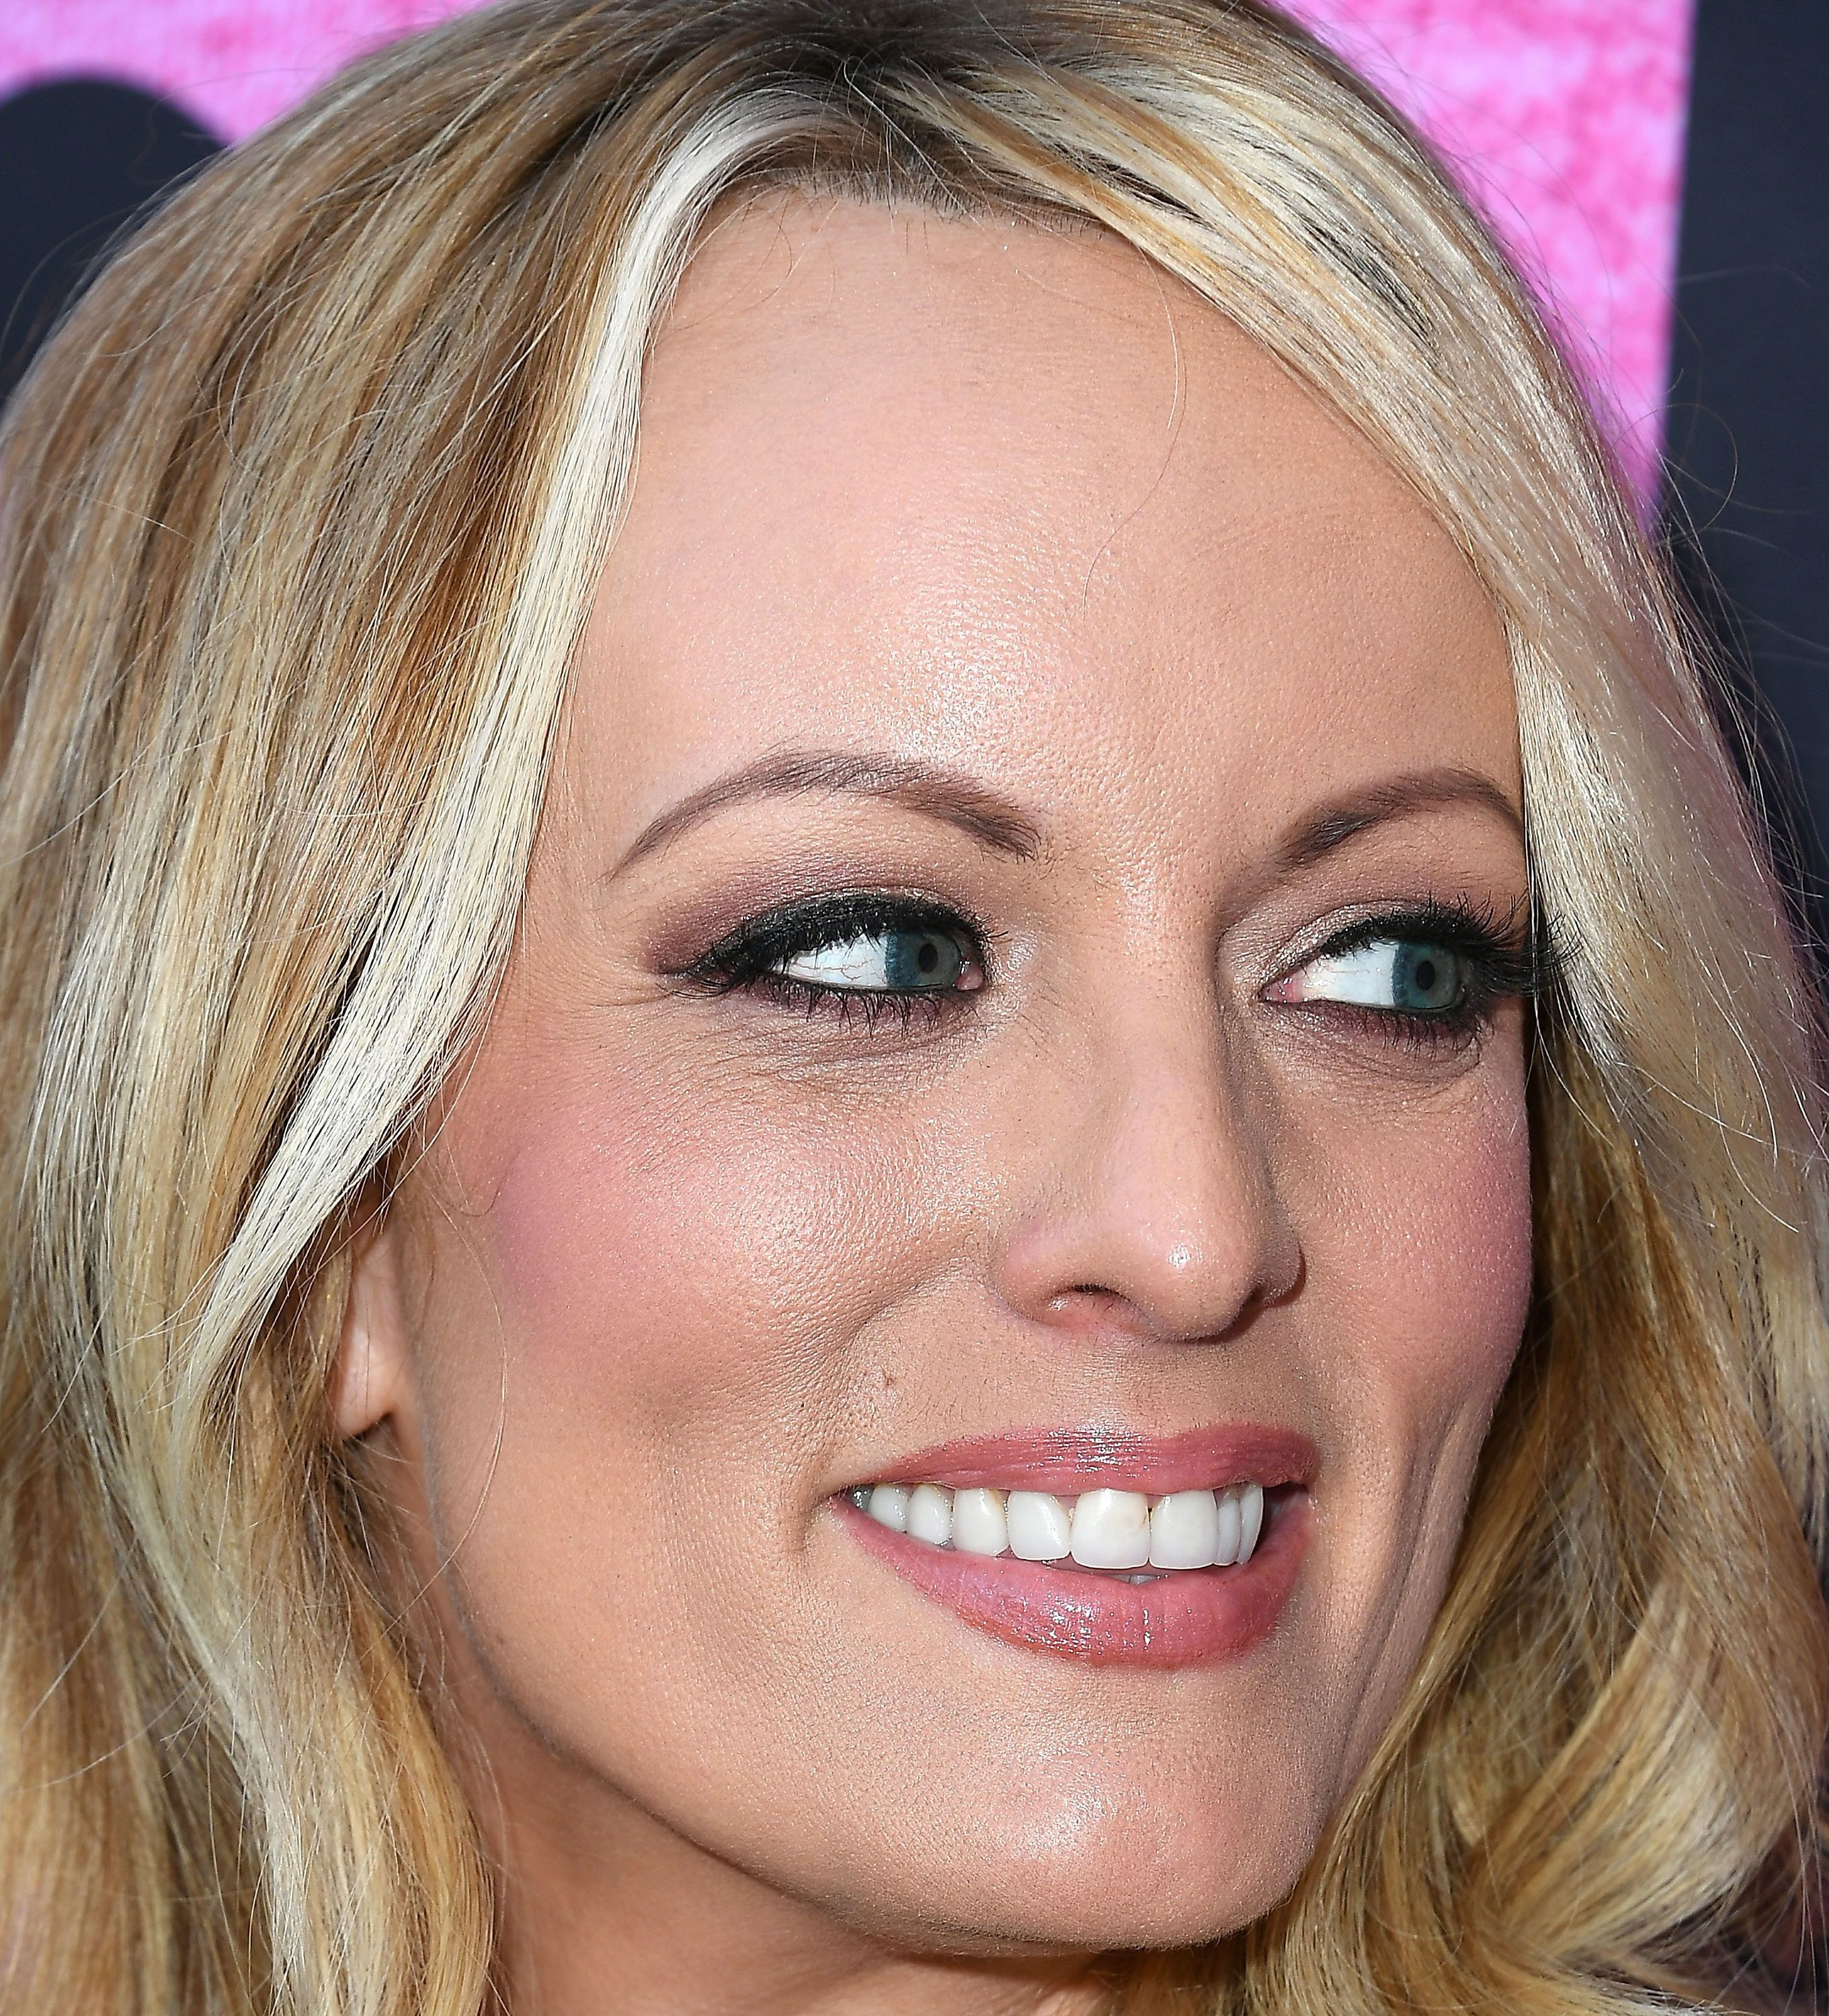 WEST HOLLYWOOD, CA - MAY 23:  Stormy Daniels Fan Meet And Greet at Chi Chi LaRue's on May 23, 2018 in West Hollywood, California.  (Photo by Steve Granitz/WireImage)